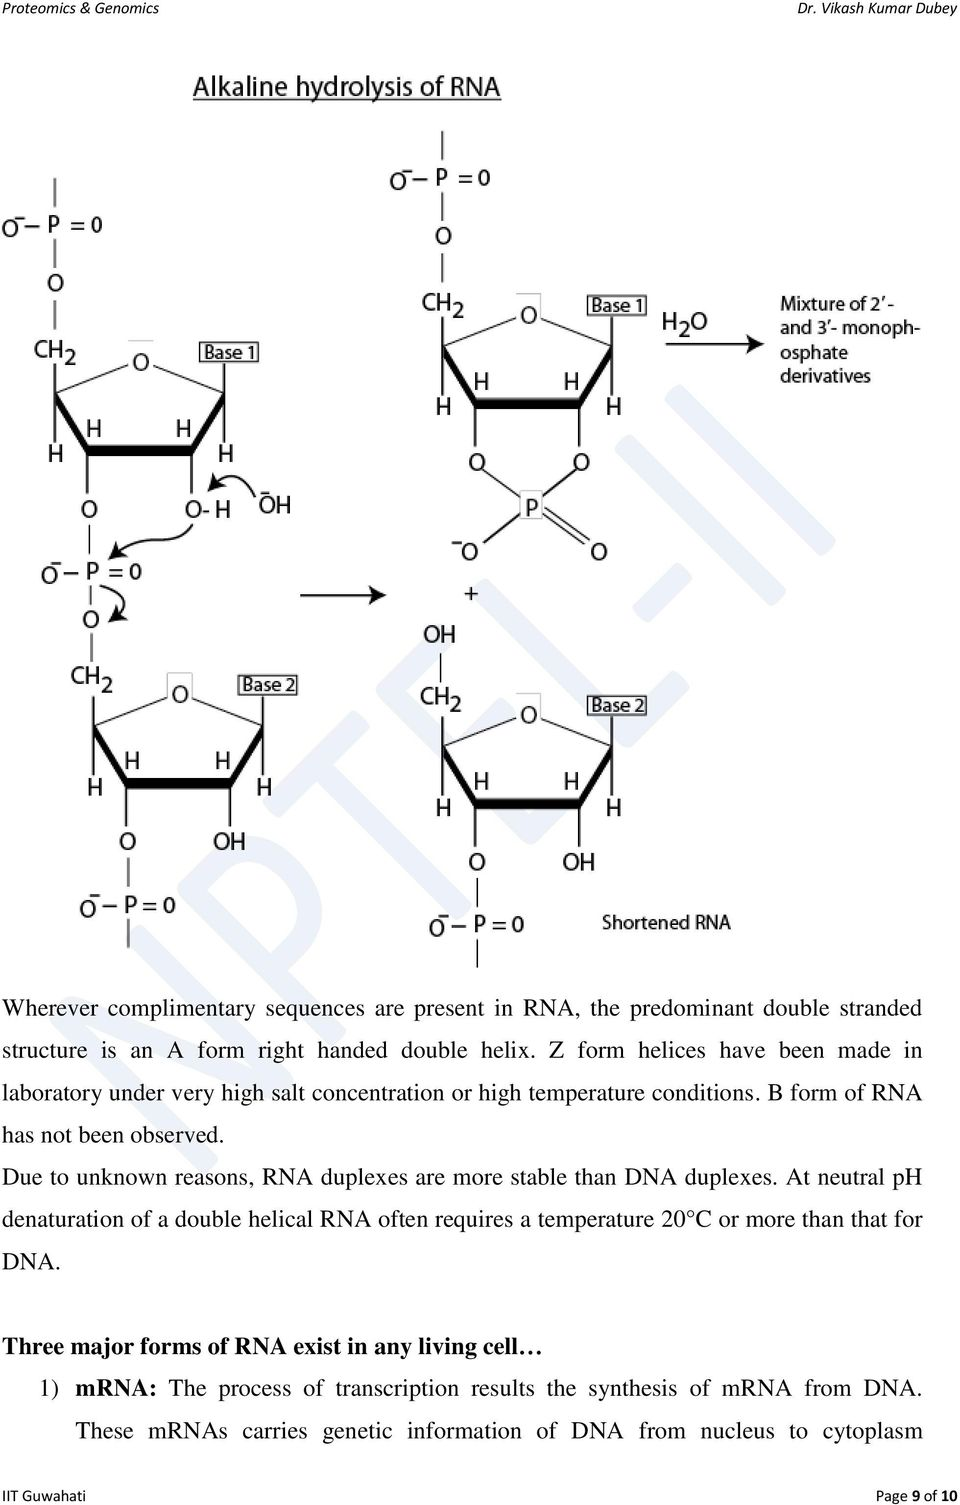 Due to unknown reasons, RNA duplexes are more stable than DNA duplexes.